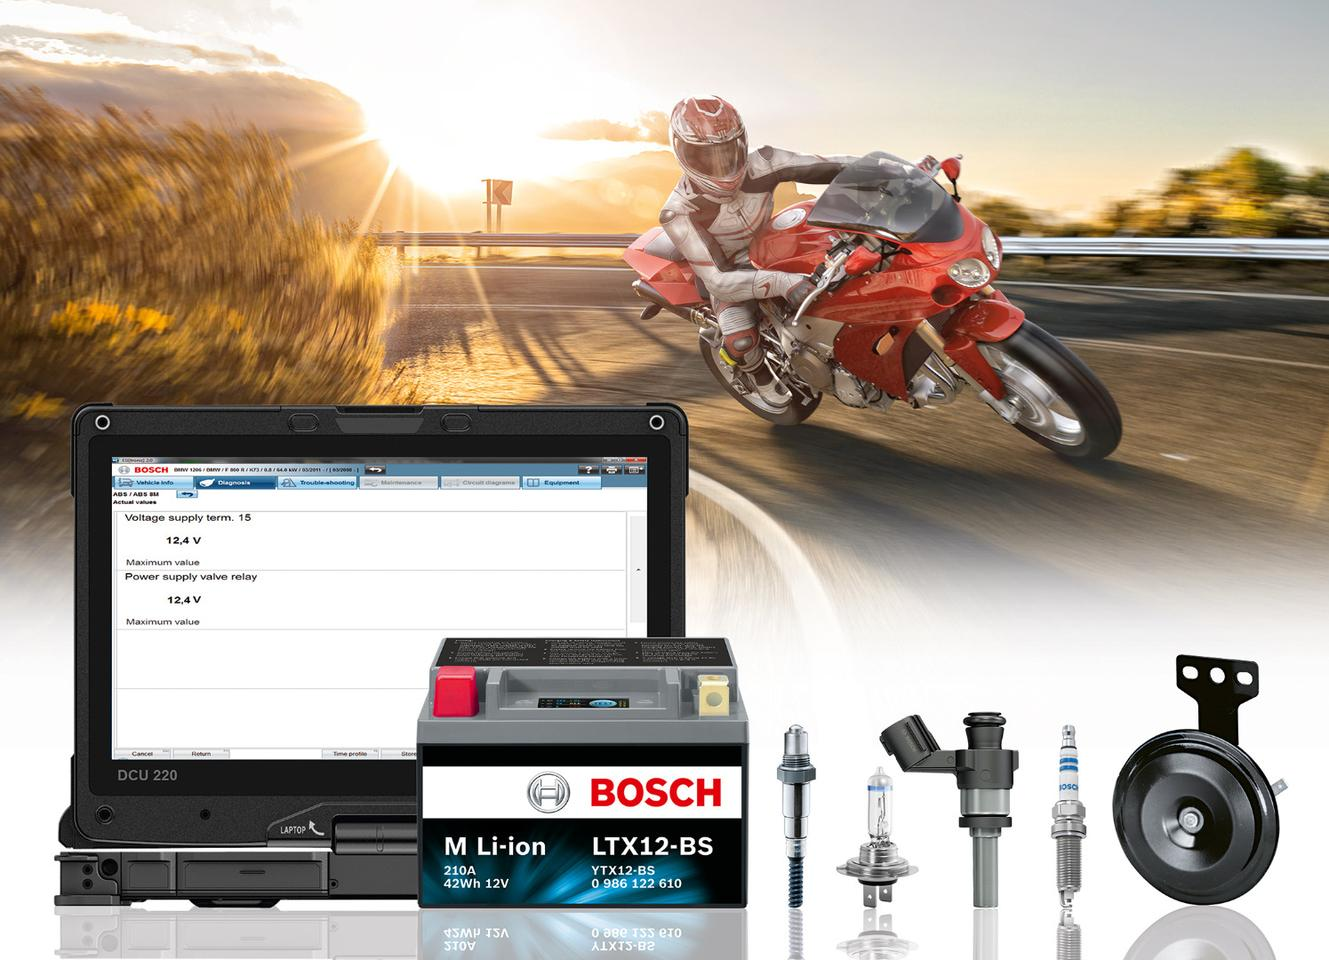 Bosch offers a wide variety of gear for motorcycles